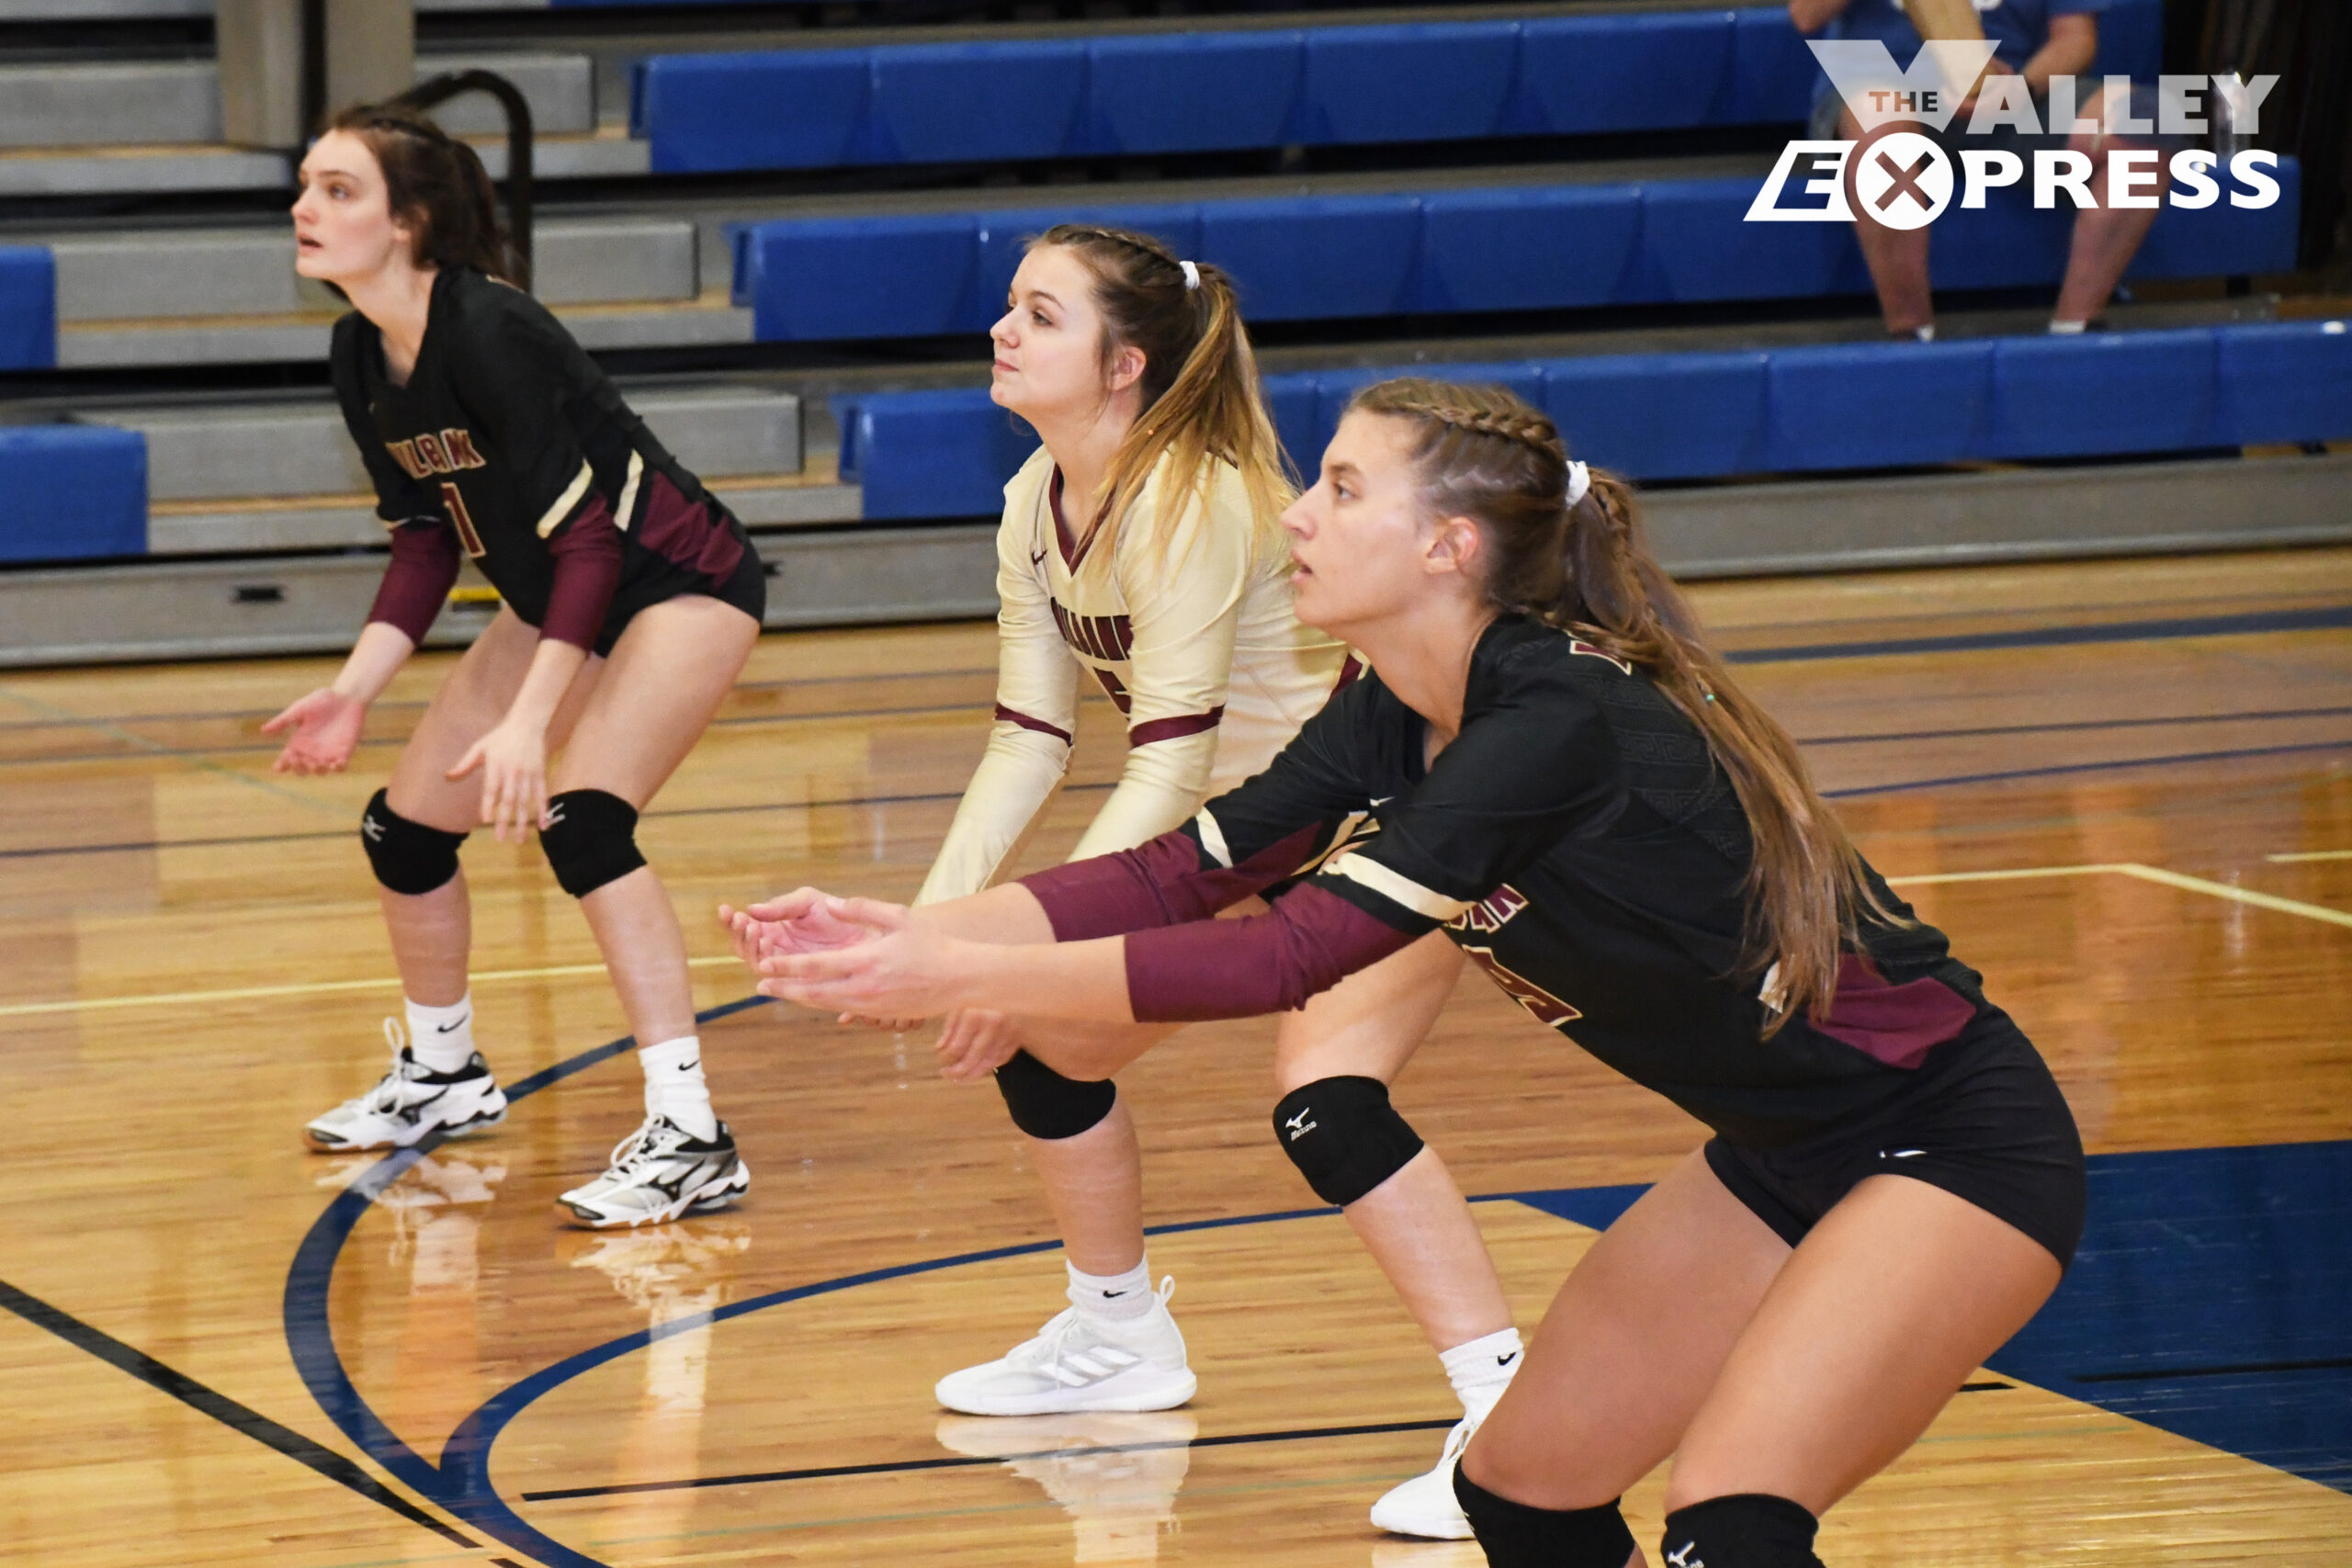 Lady Bulldogs Defeated in Second Round of Region 1A Volleyball